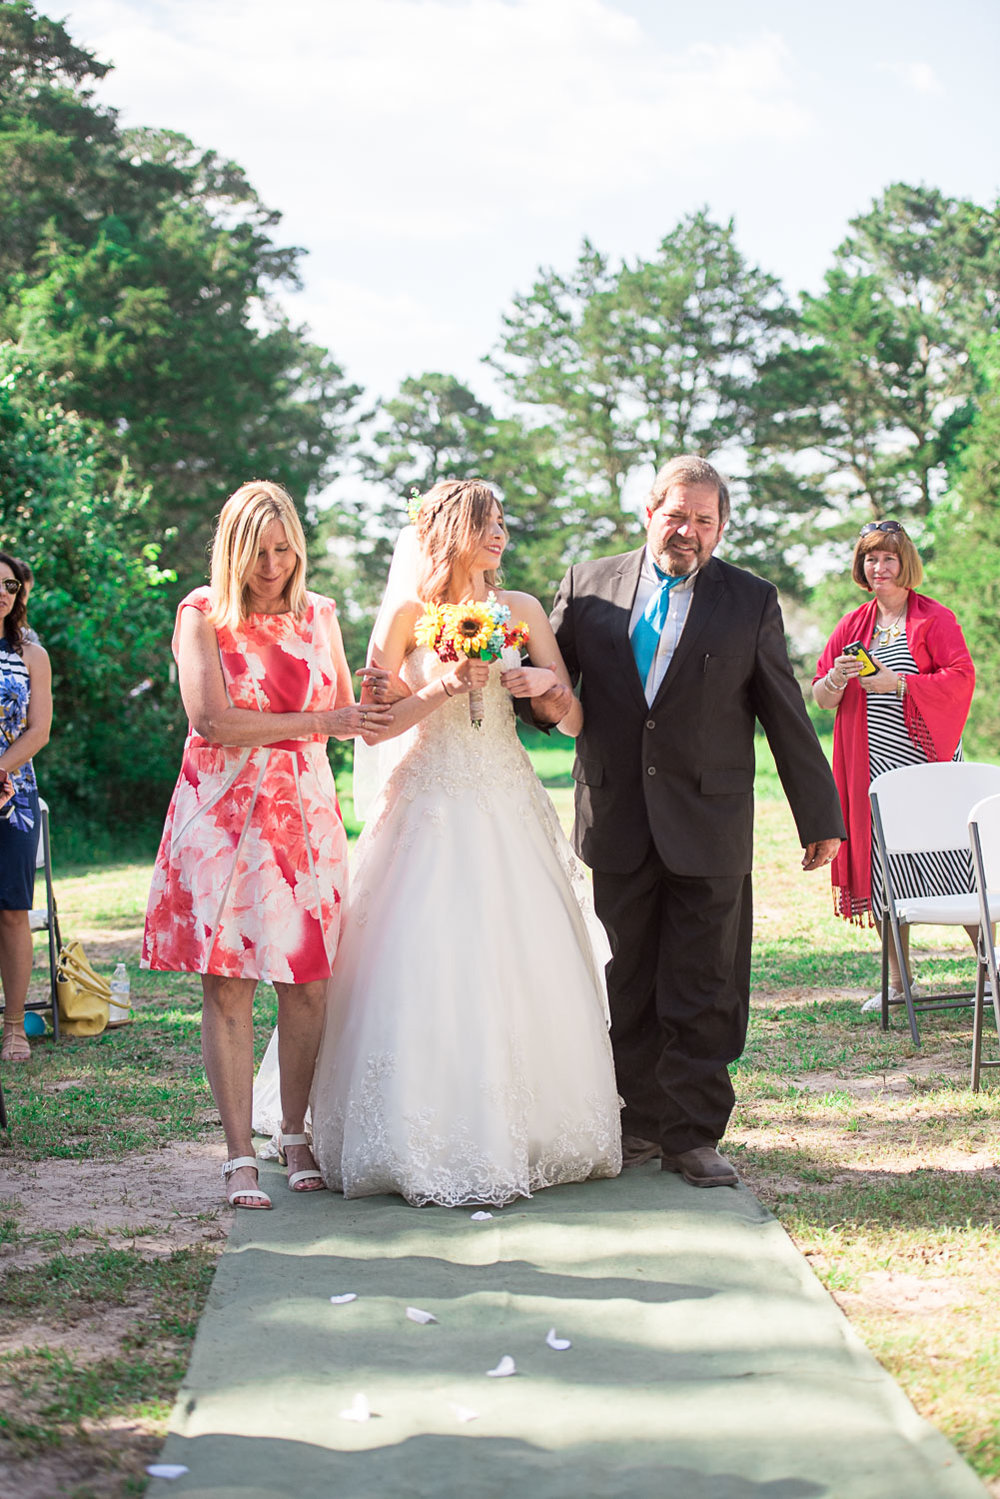 57 both parents walking bride down aisle.jpg